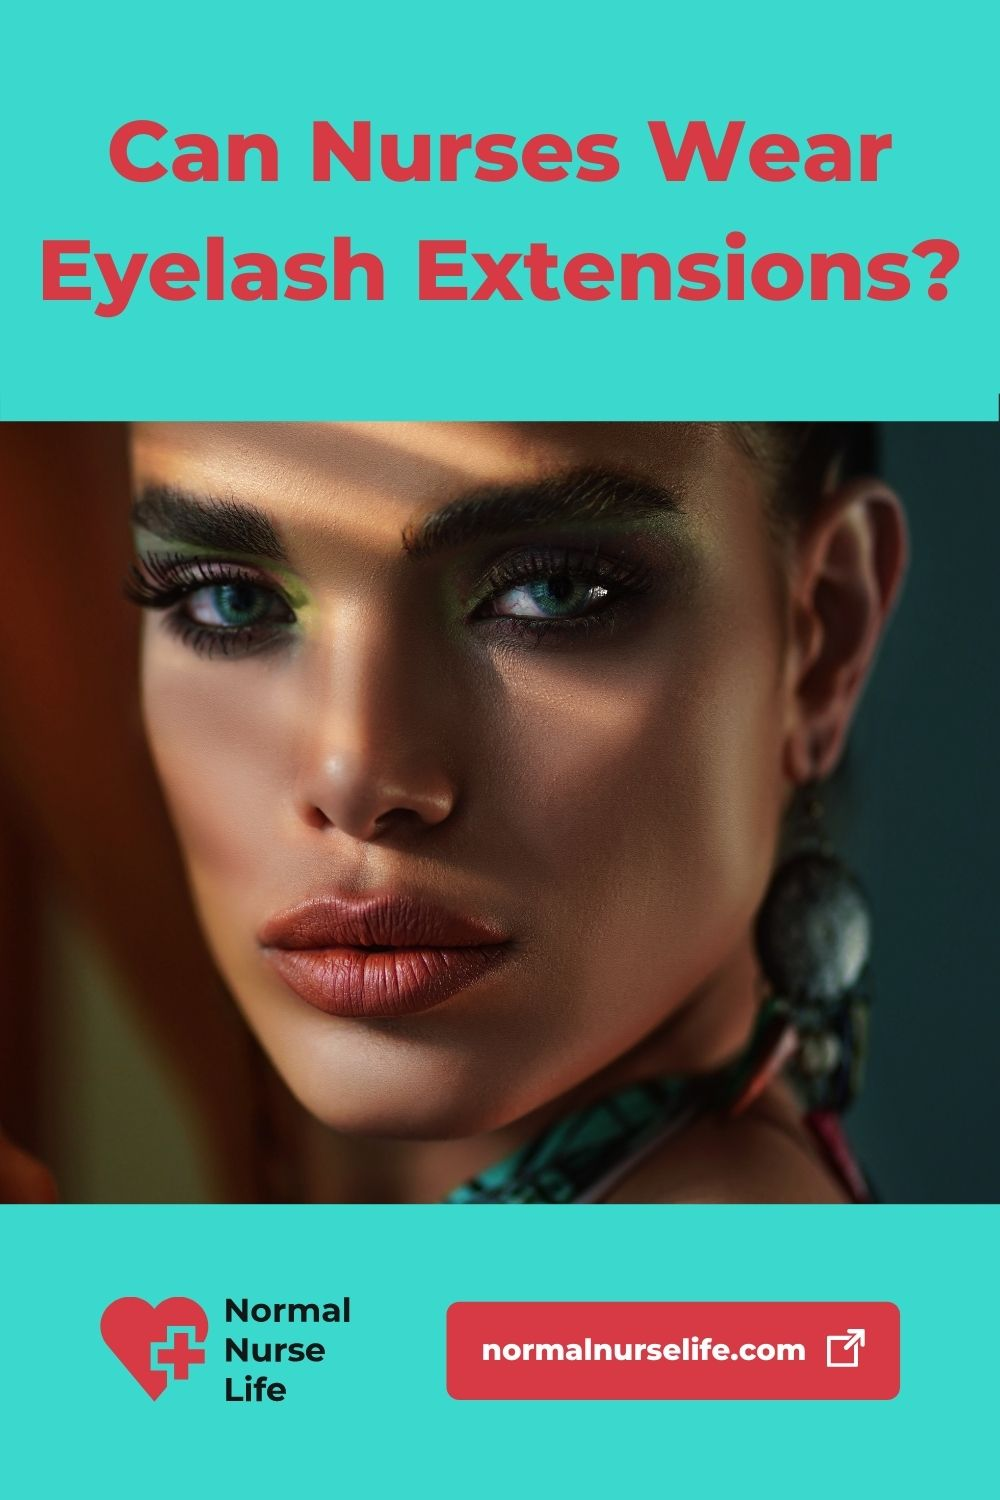 Can nurses wear eyelash extensions or not